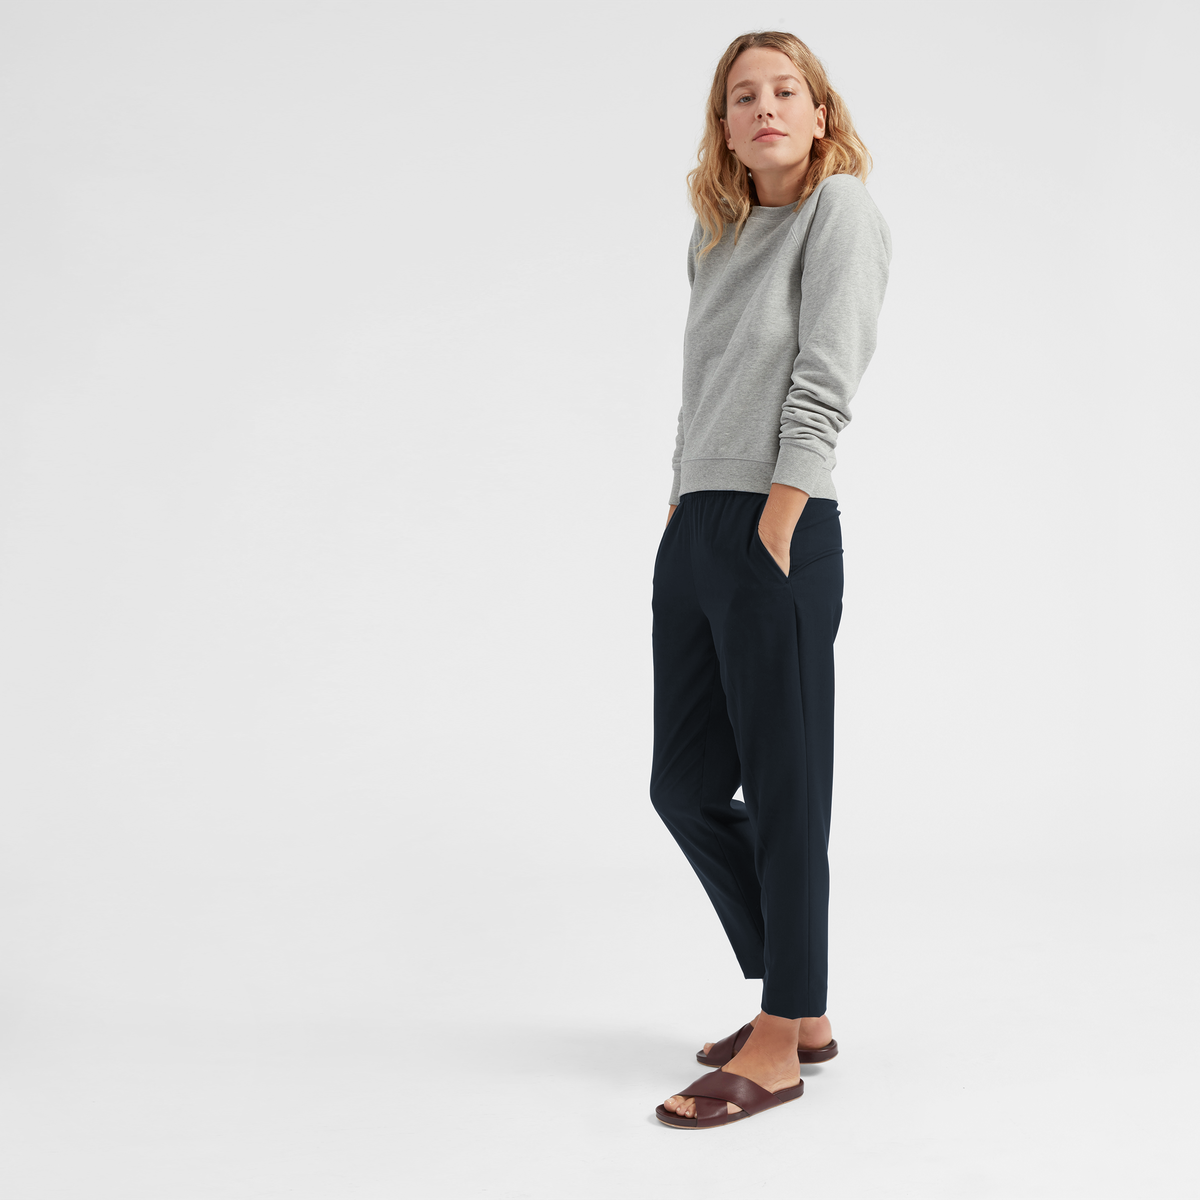 ea9a764376e It s called The Easy Pant for a reason. Made from drapey